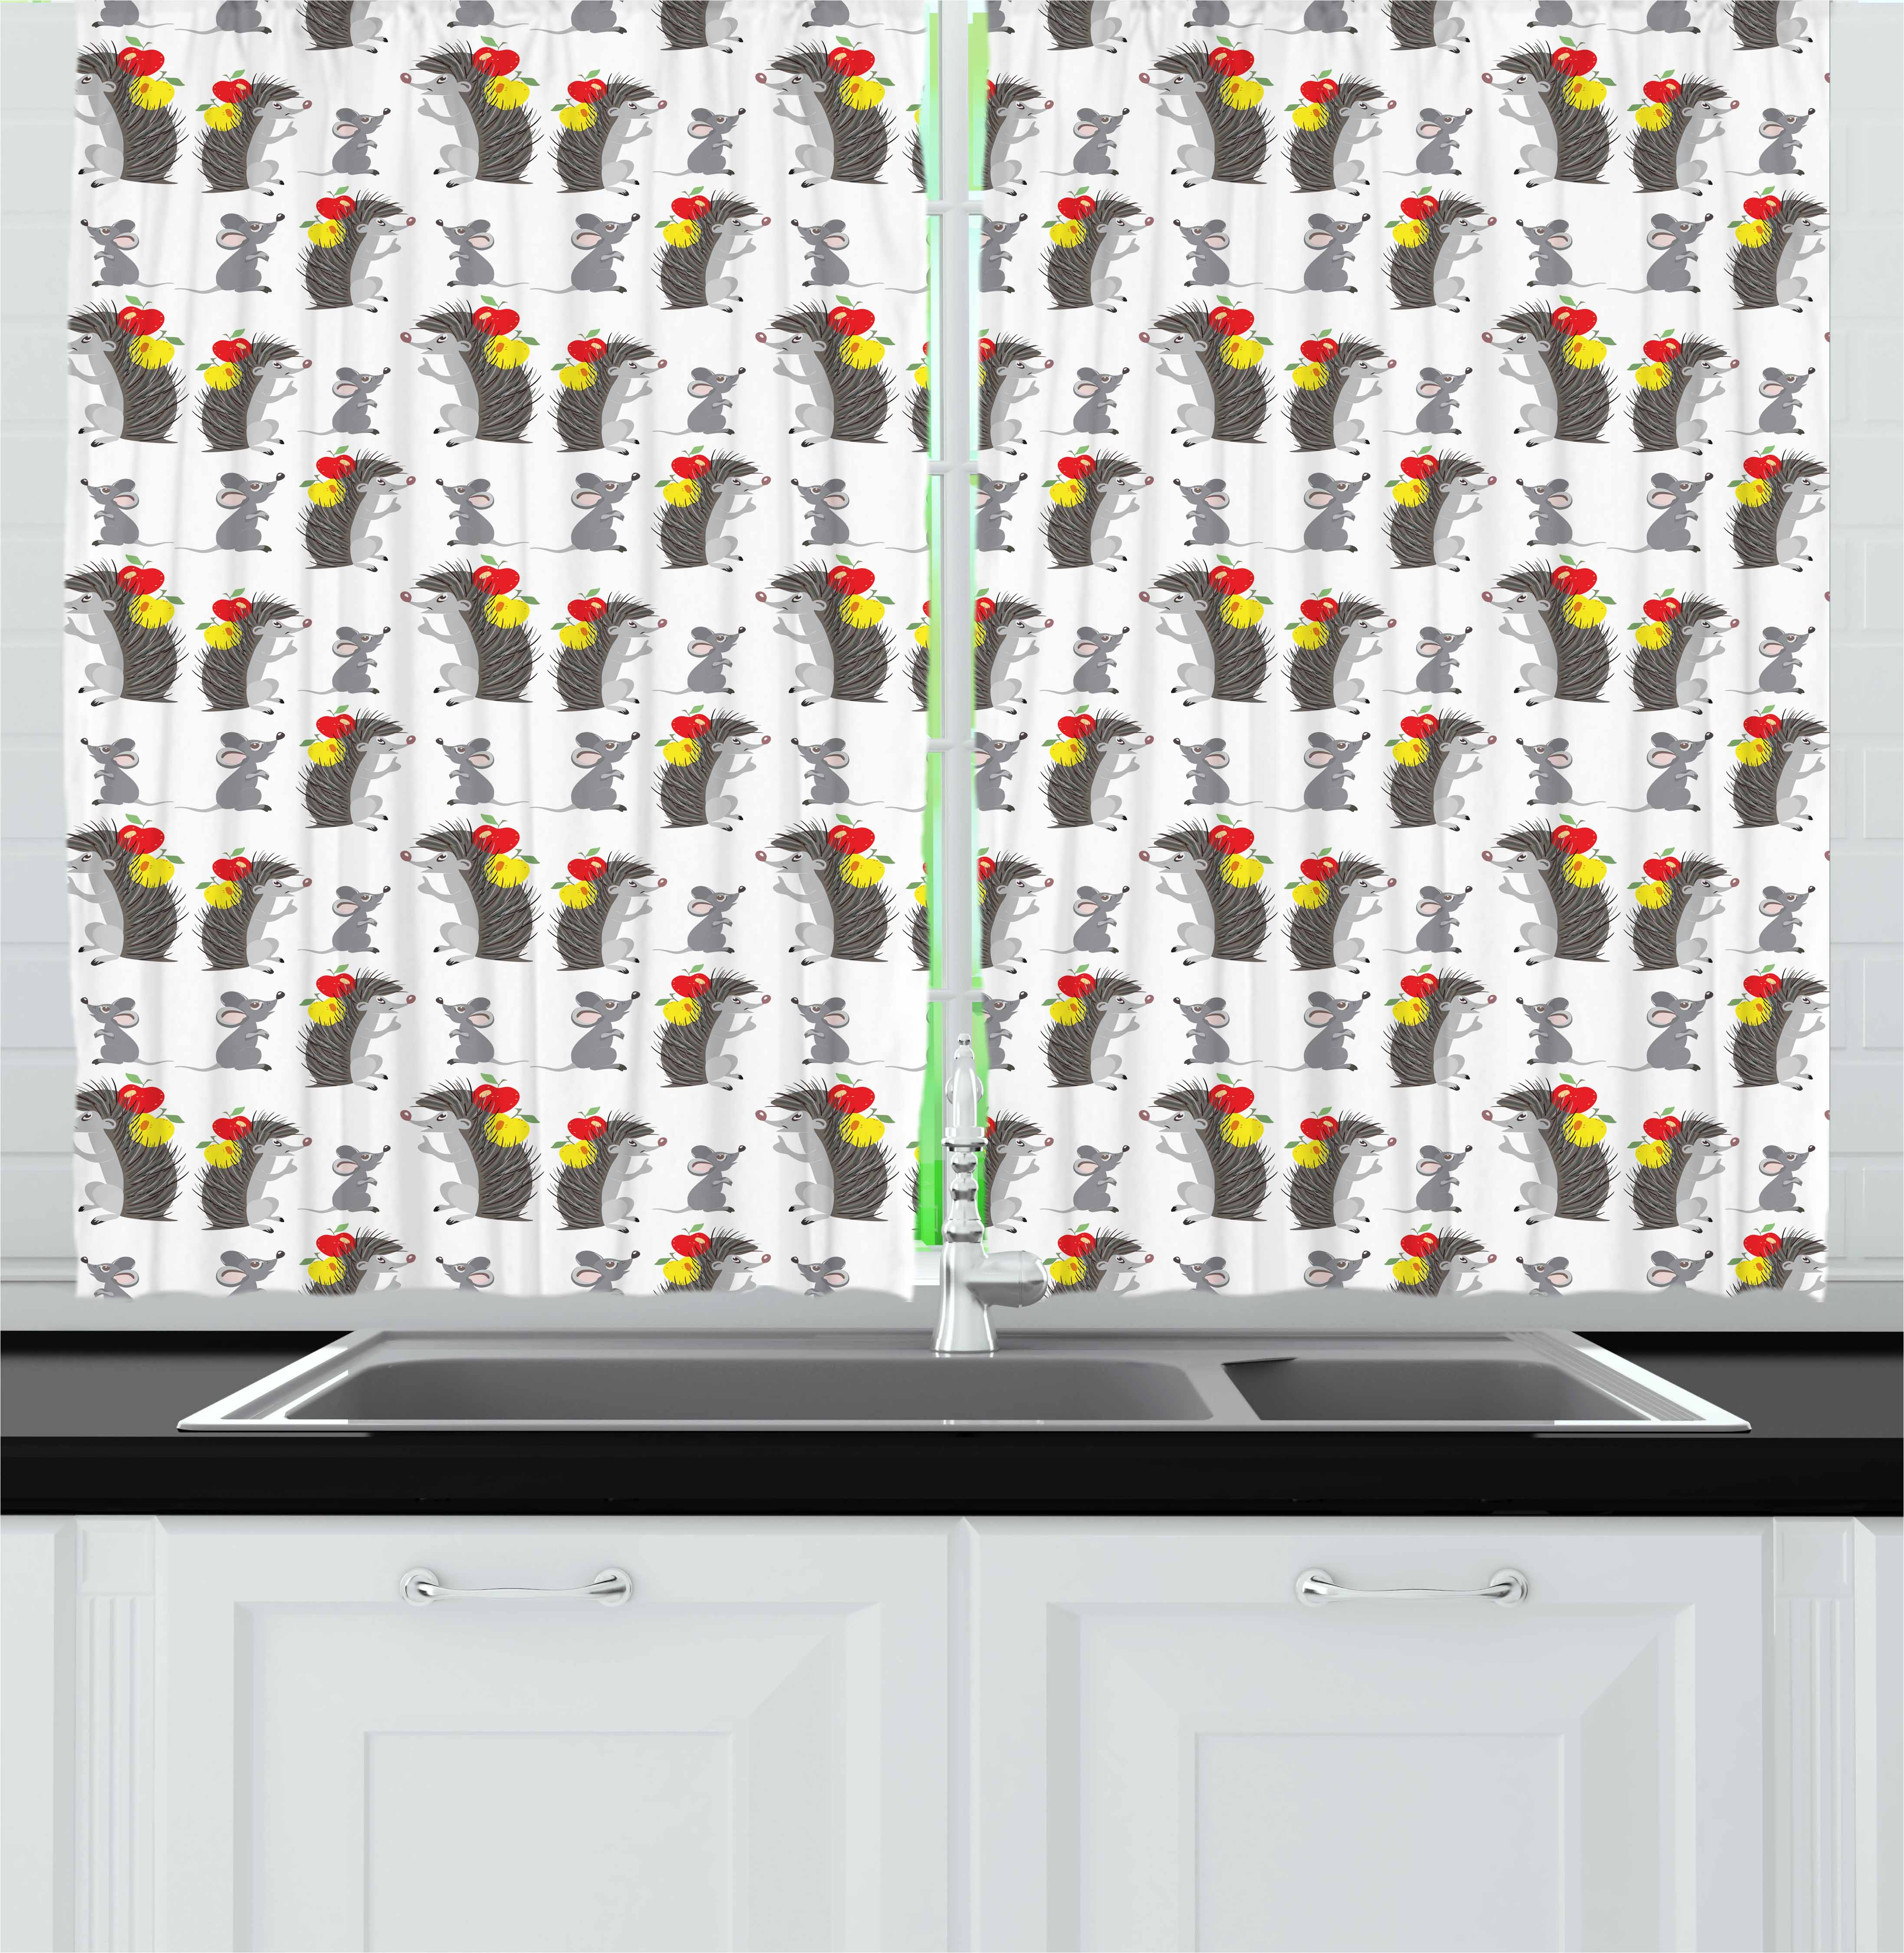 Apple Curtains 2 Panels Set, Funny Cartoon Hedgehog and Mouse Carrying Apples Happy and Playful Kids Design, Window Drapes for Living Room Bedroom, 55W X 39L Inches, Grey Red Yellow, by Ambesonne